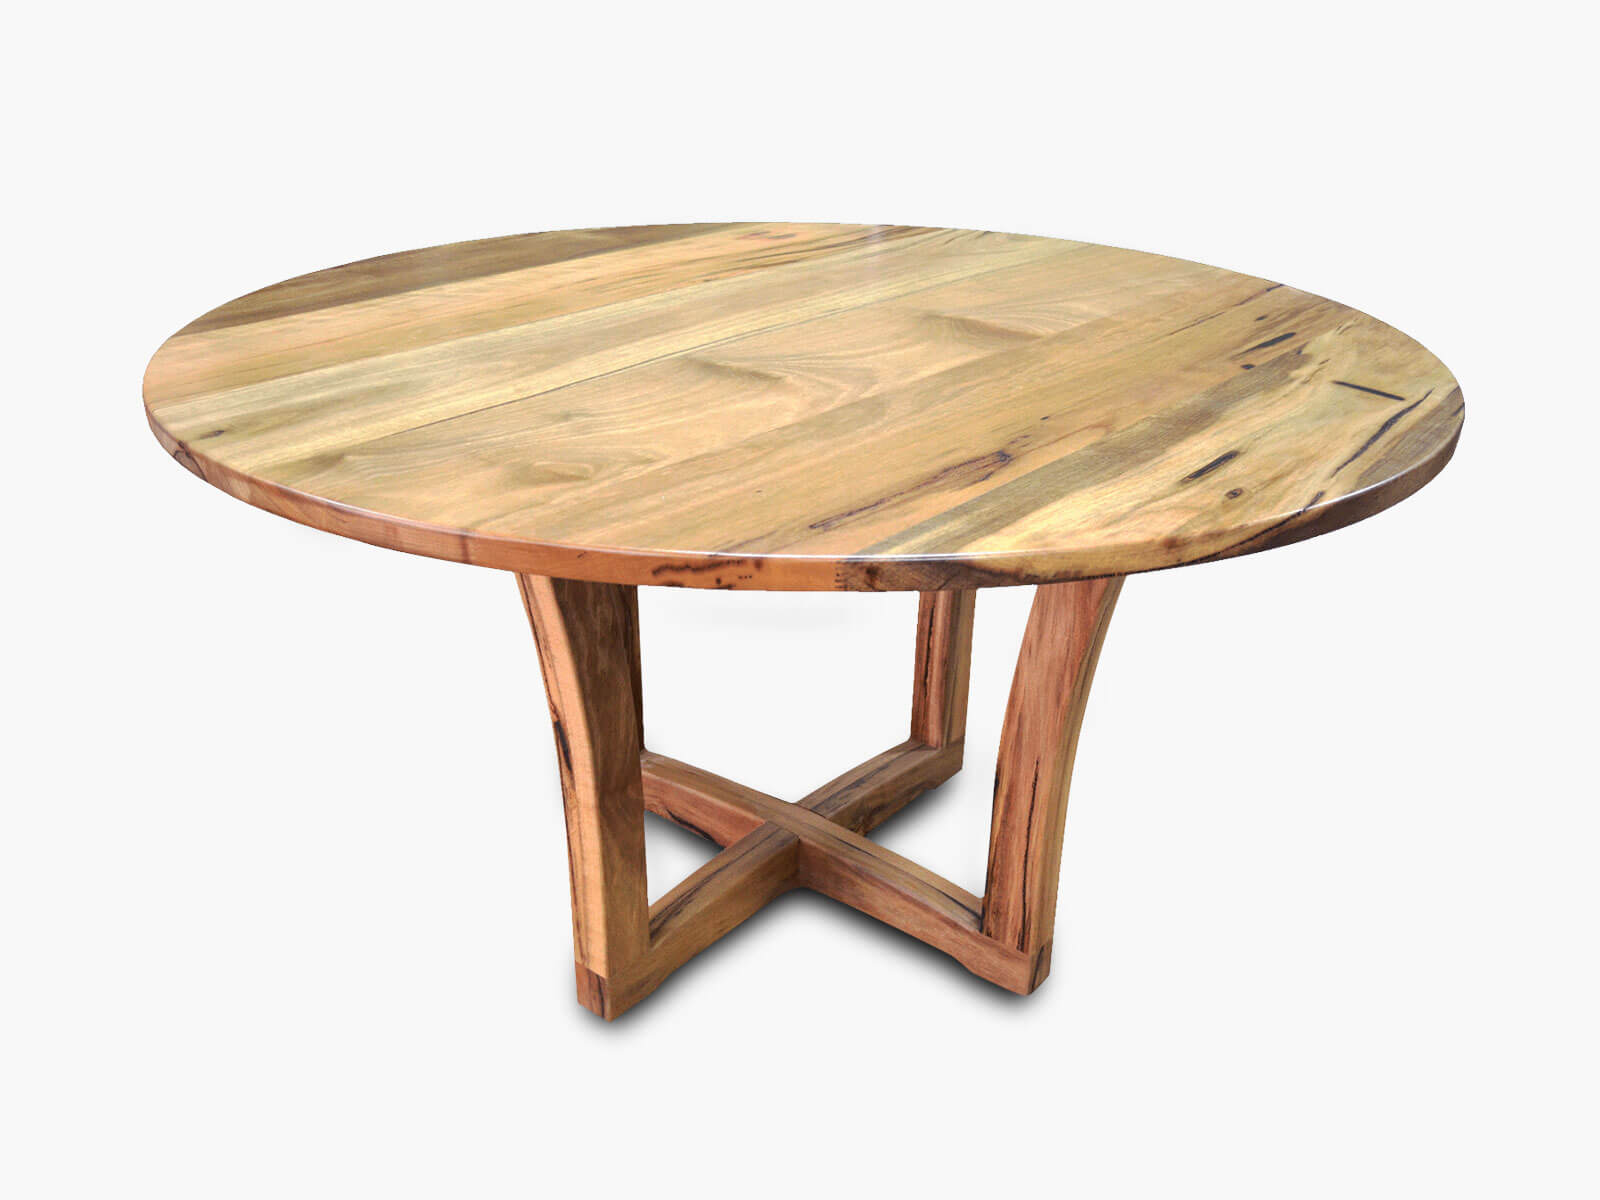 Bremer-Bay-Round Timber Furniture